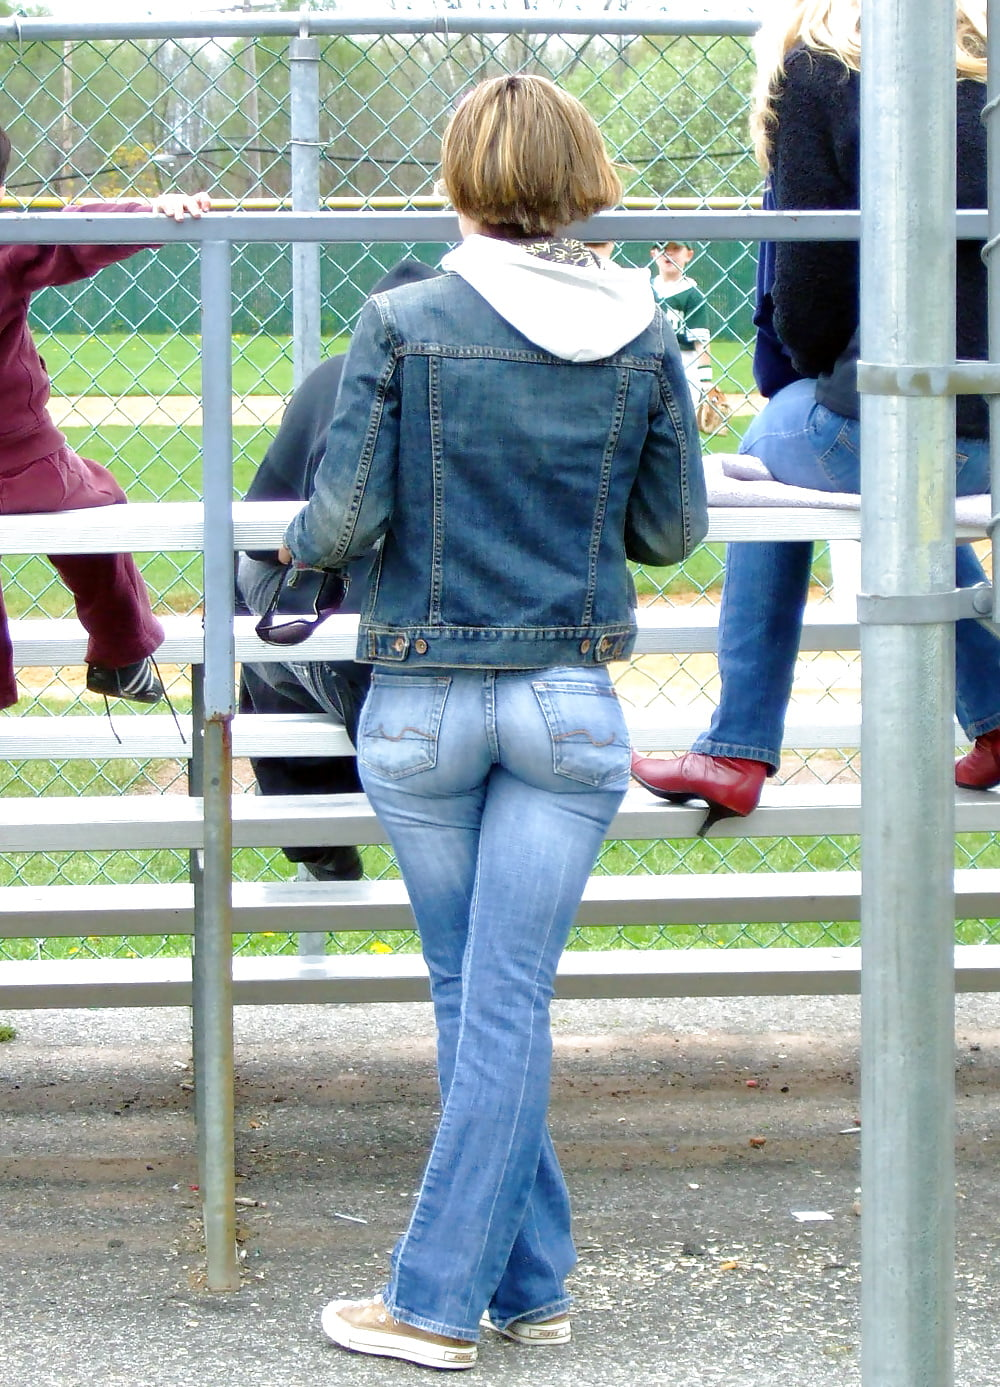 mustang-candid-ass-jeans-blood